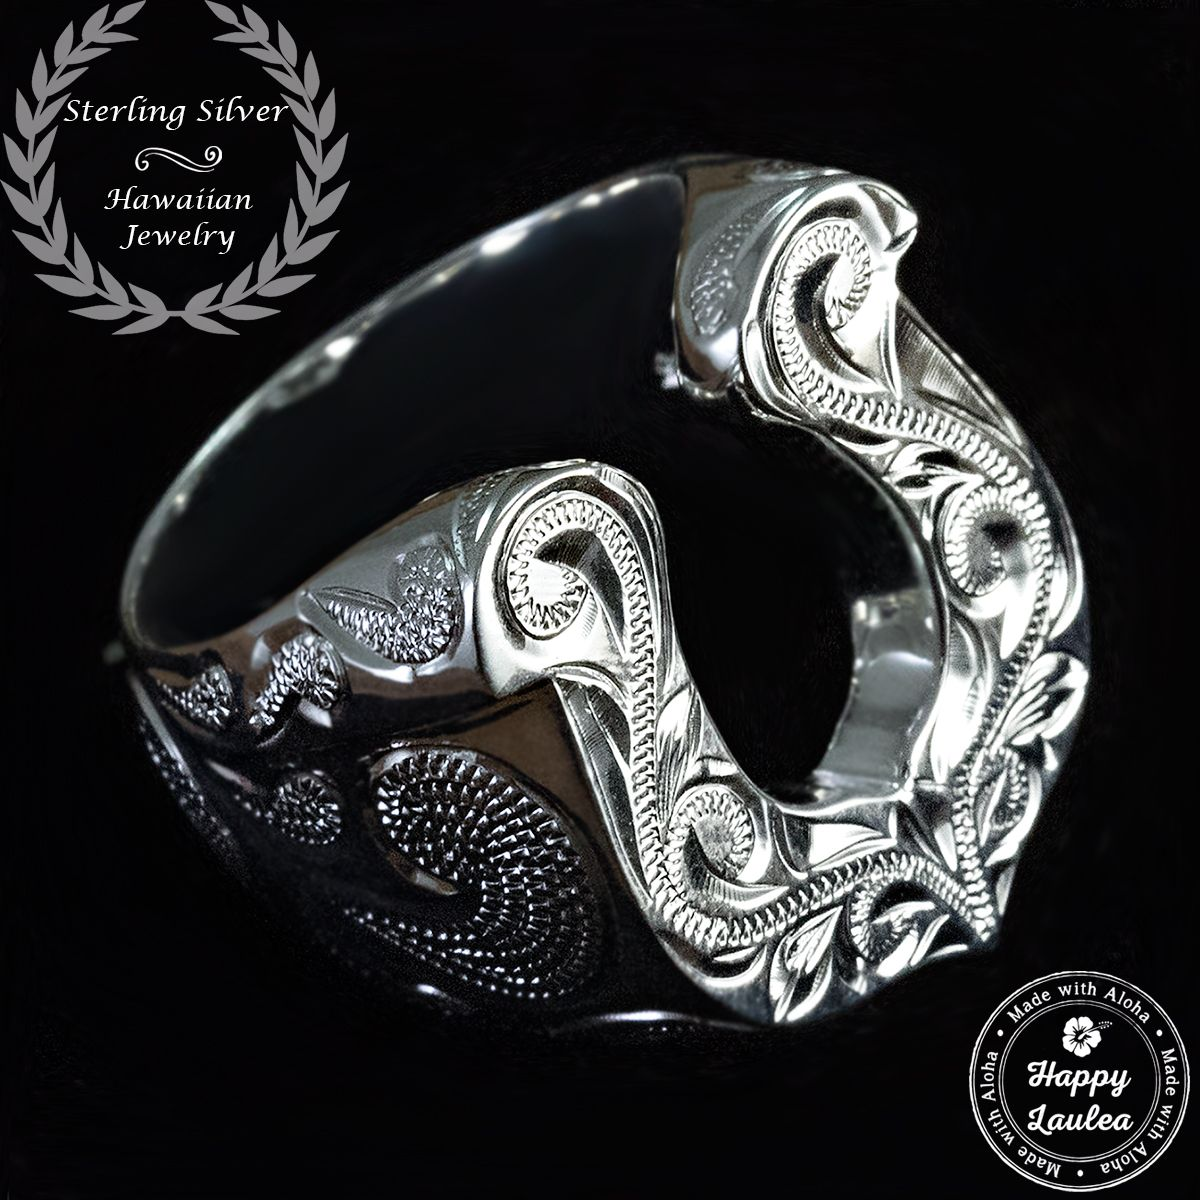 Custom Made Sterling Silver Horse Shoe Ring Hand Engraved Hawaiian Heritage  Design